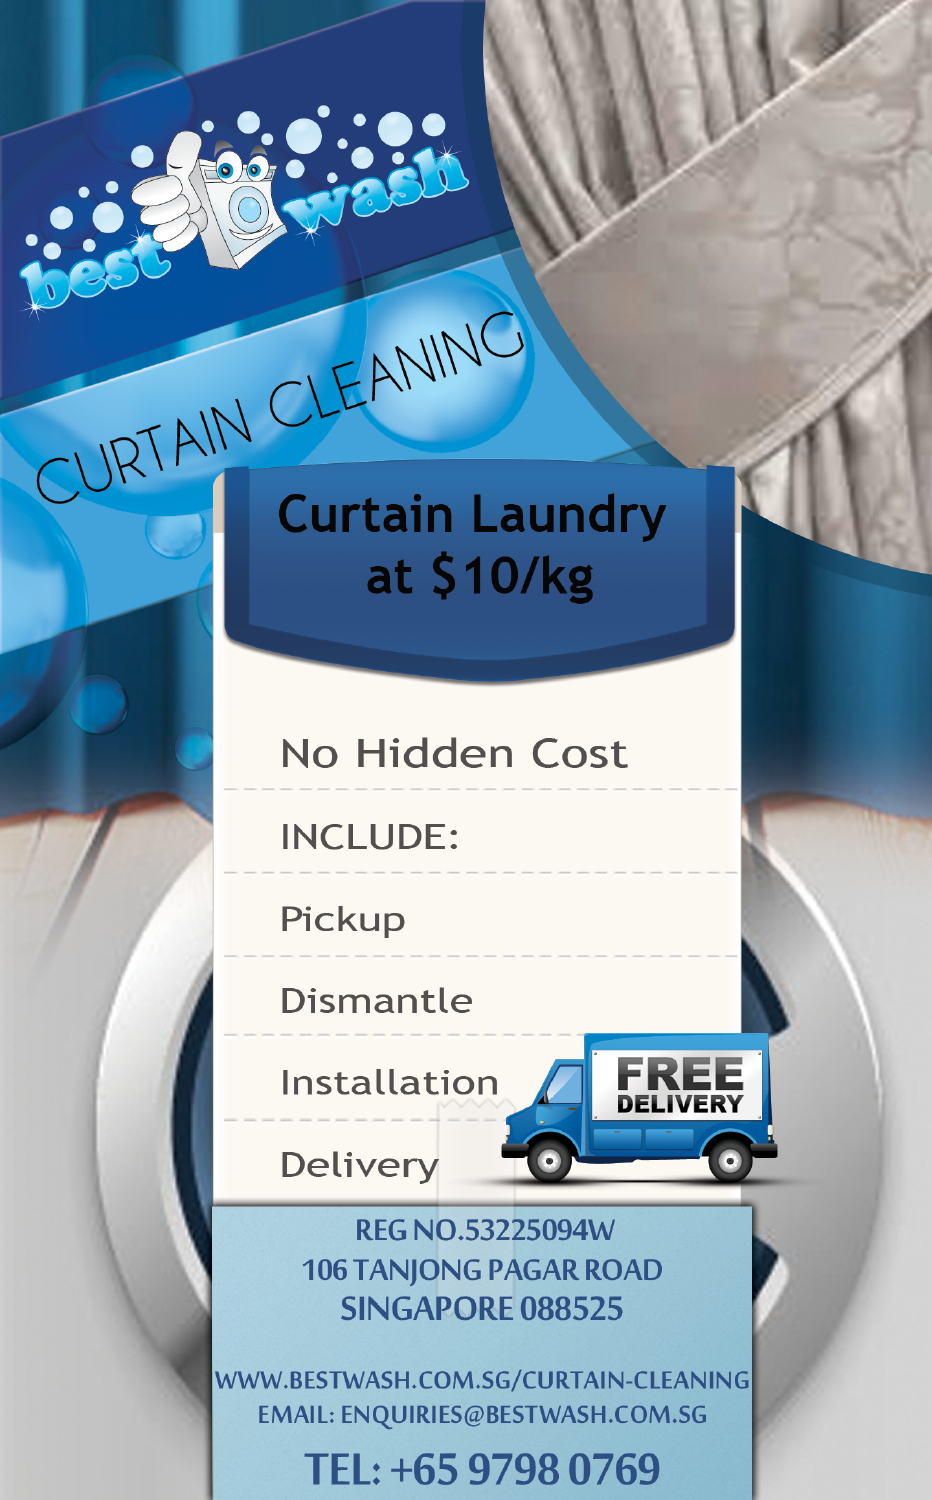 Do You Want The One Stop Shop For Dry Cleaning And Laundry Service